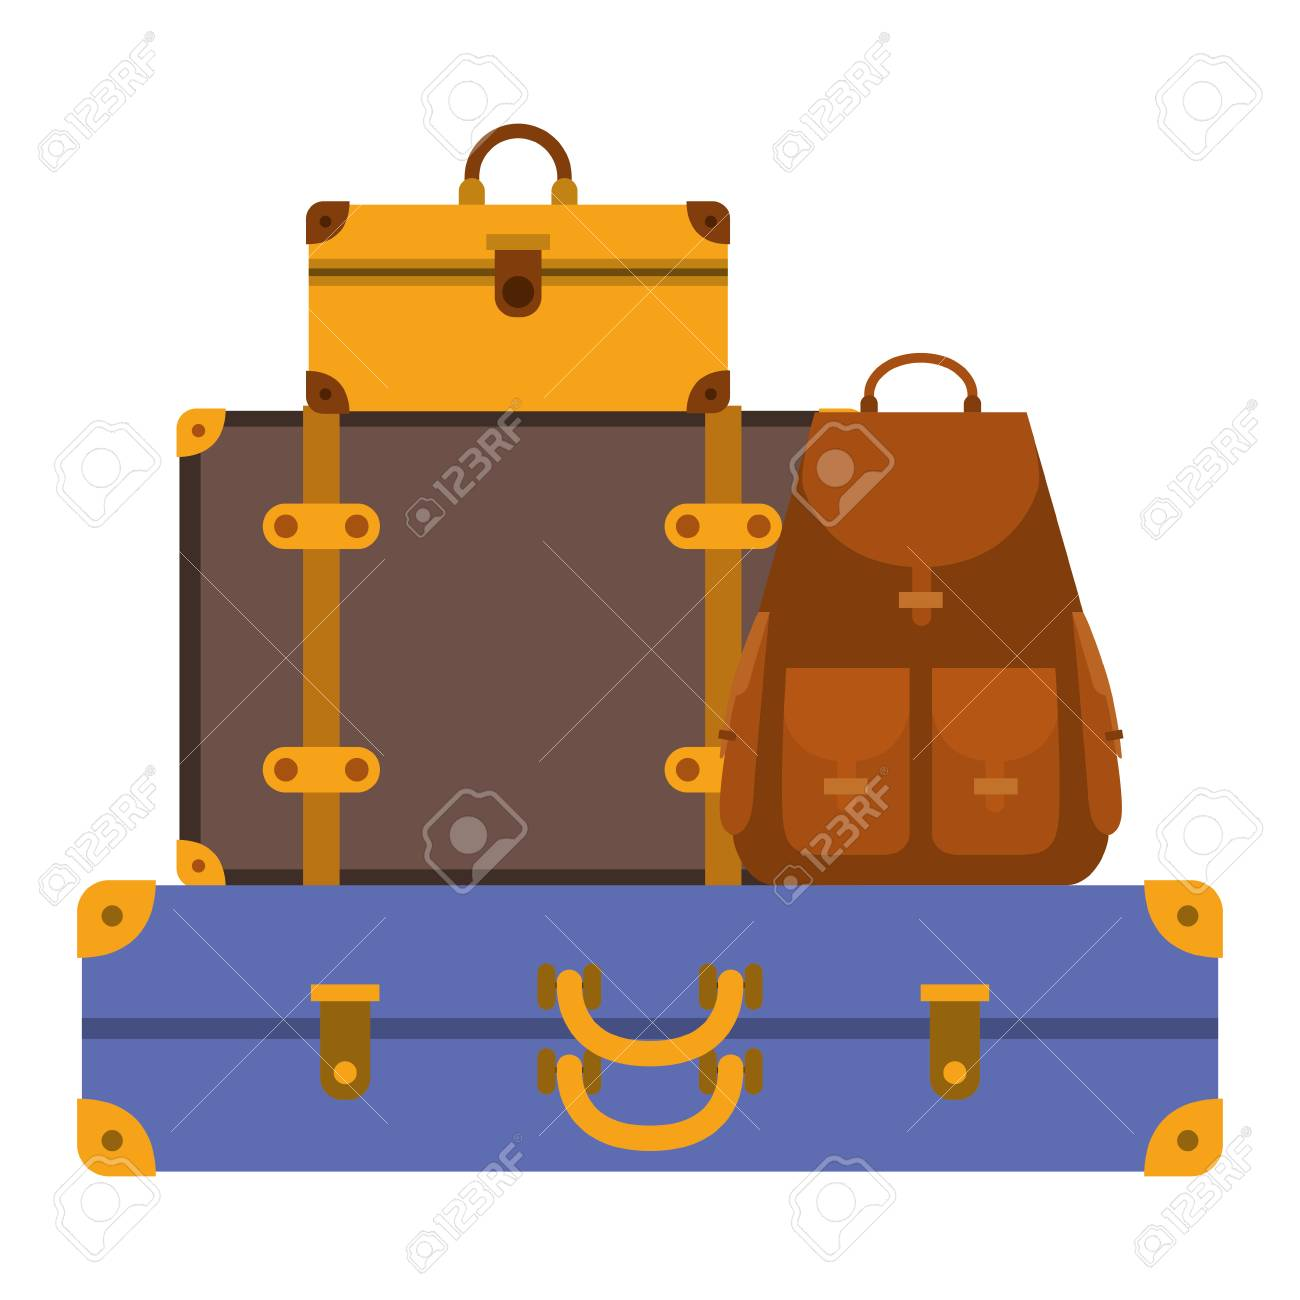 suitcases bags pile isolated icon vector illustration design - 110347297